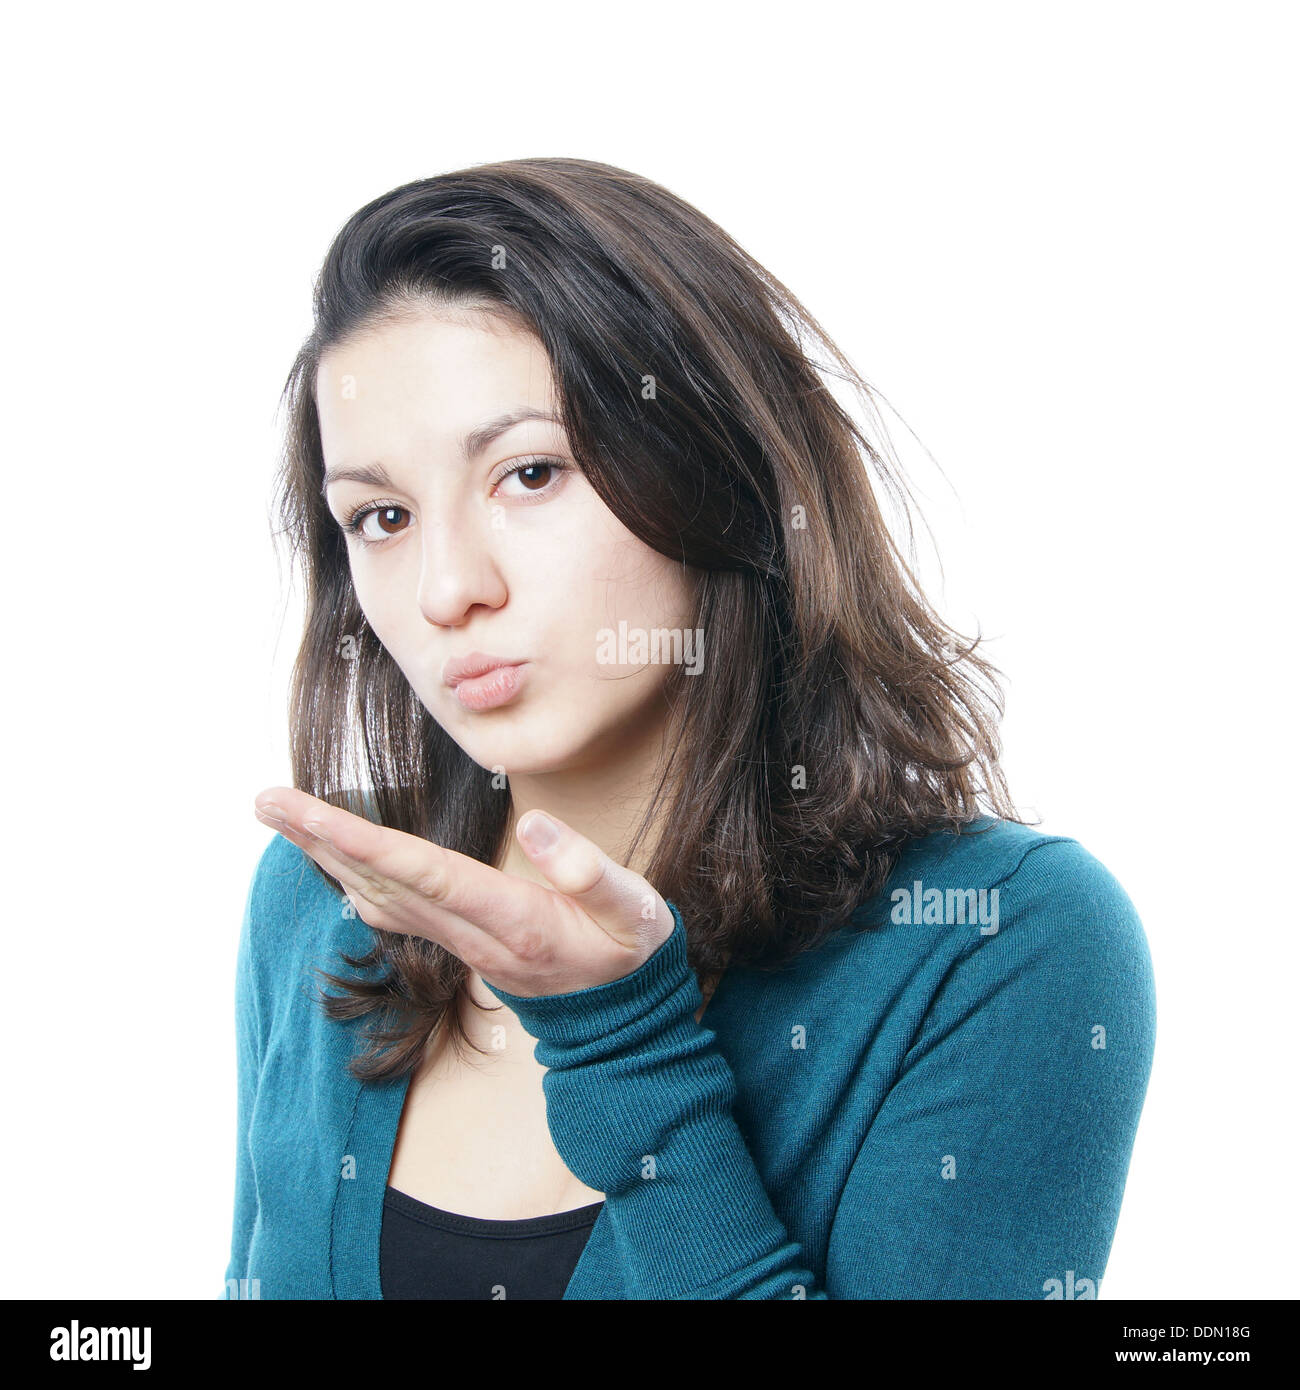 Teenage girl blowing a kiss Banque D'Images